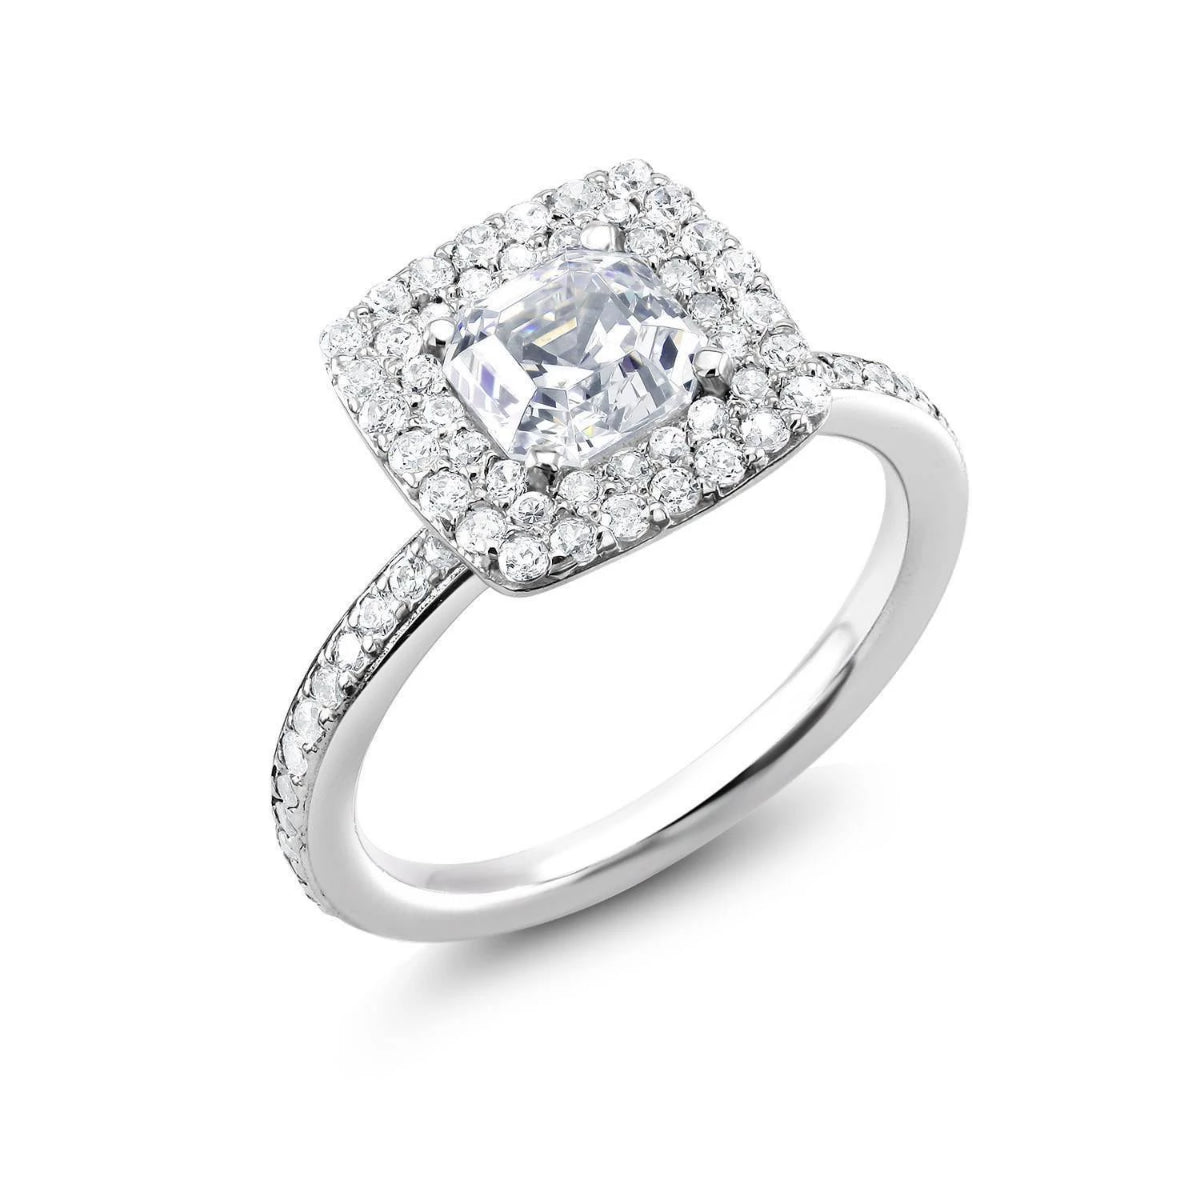 Double Halo Diamond Engagement Ring Ready for 1 50 Carat Diamond